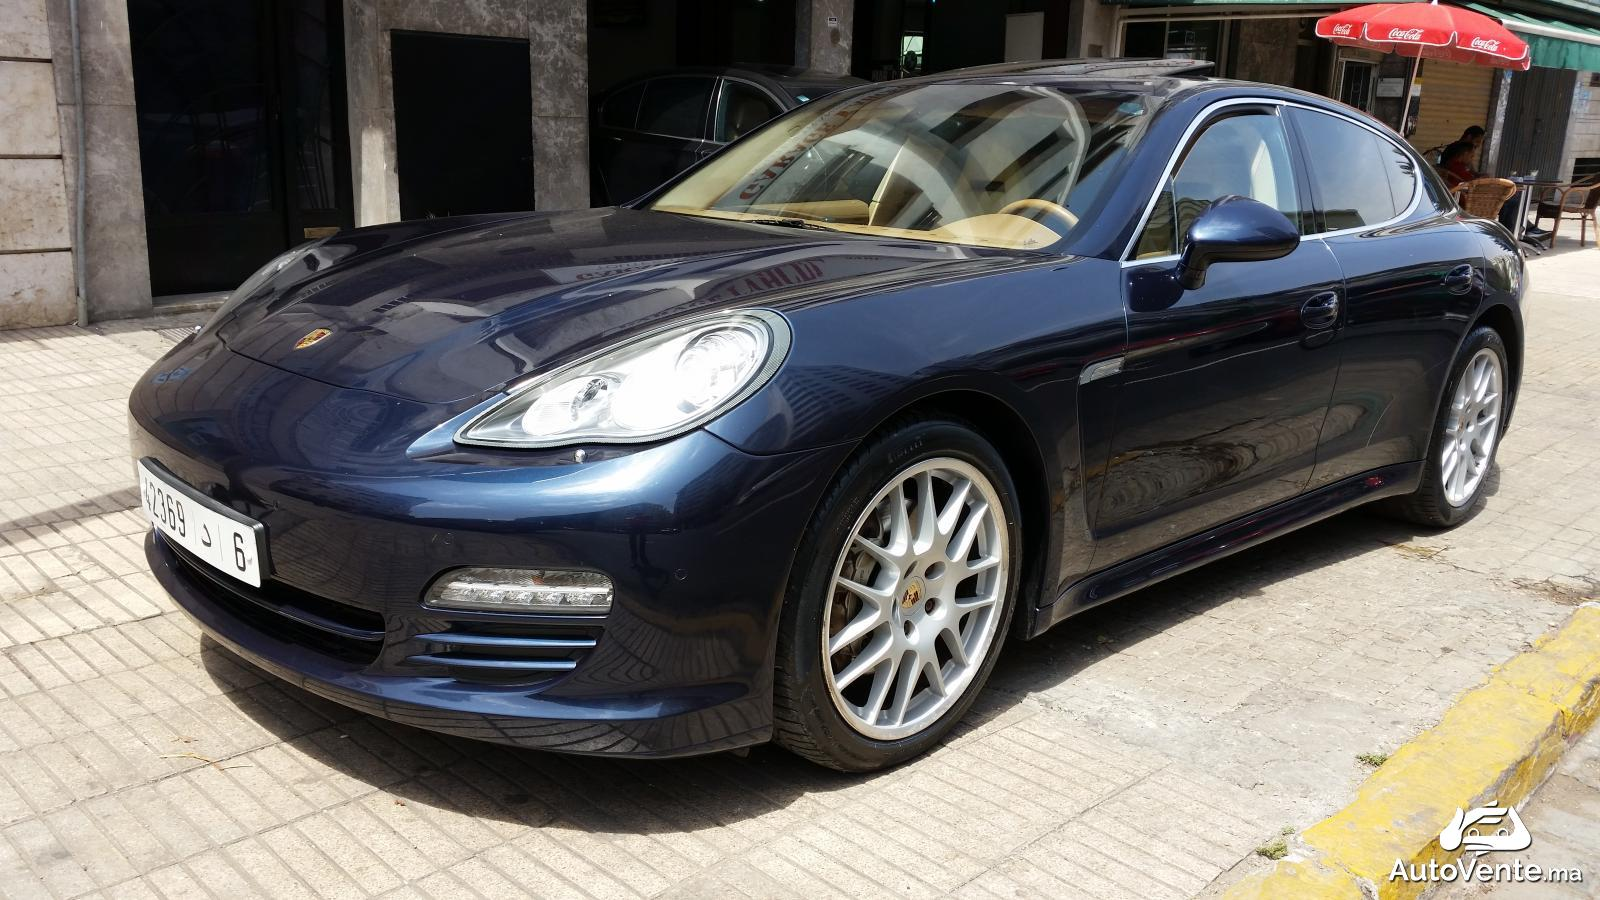 acheter porsche panamera 4s d 39 occasion a casablanca maroc autovente. Black Bedroom Furniture Sets. Home Design Ideas